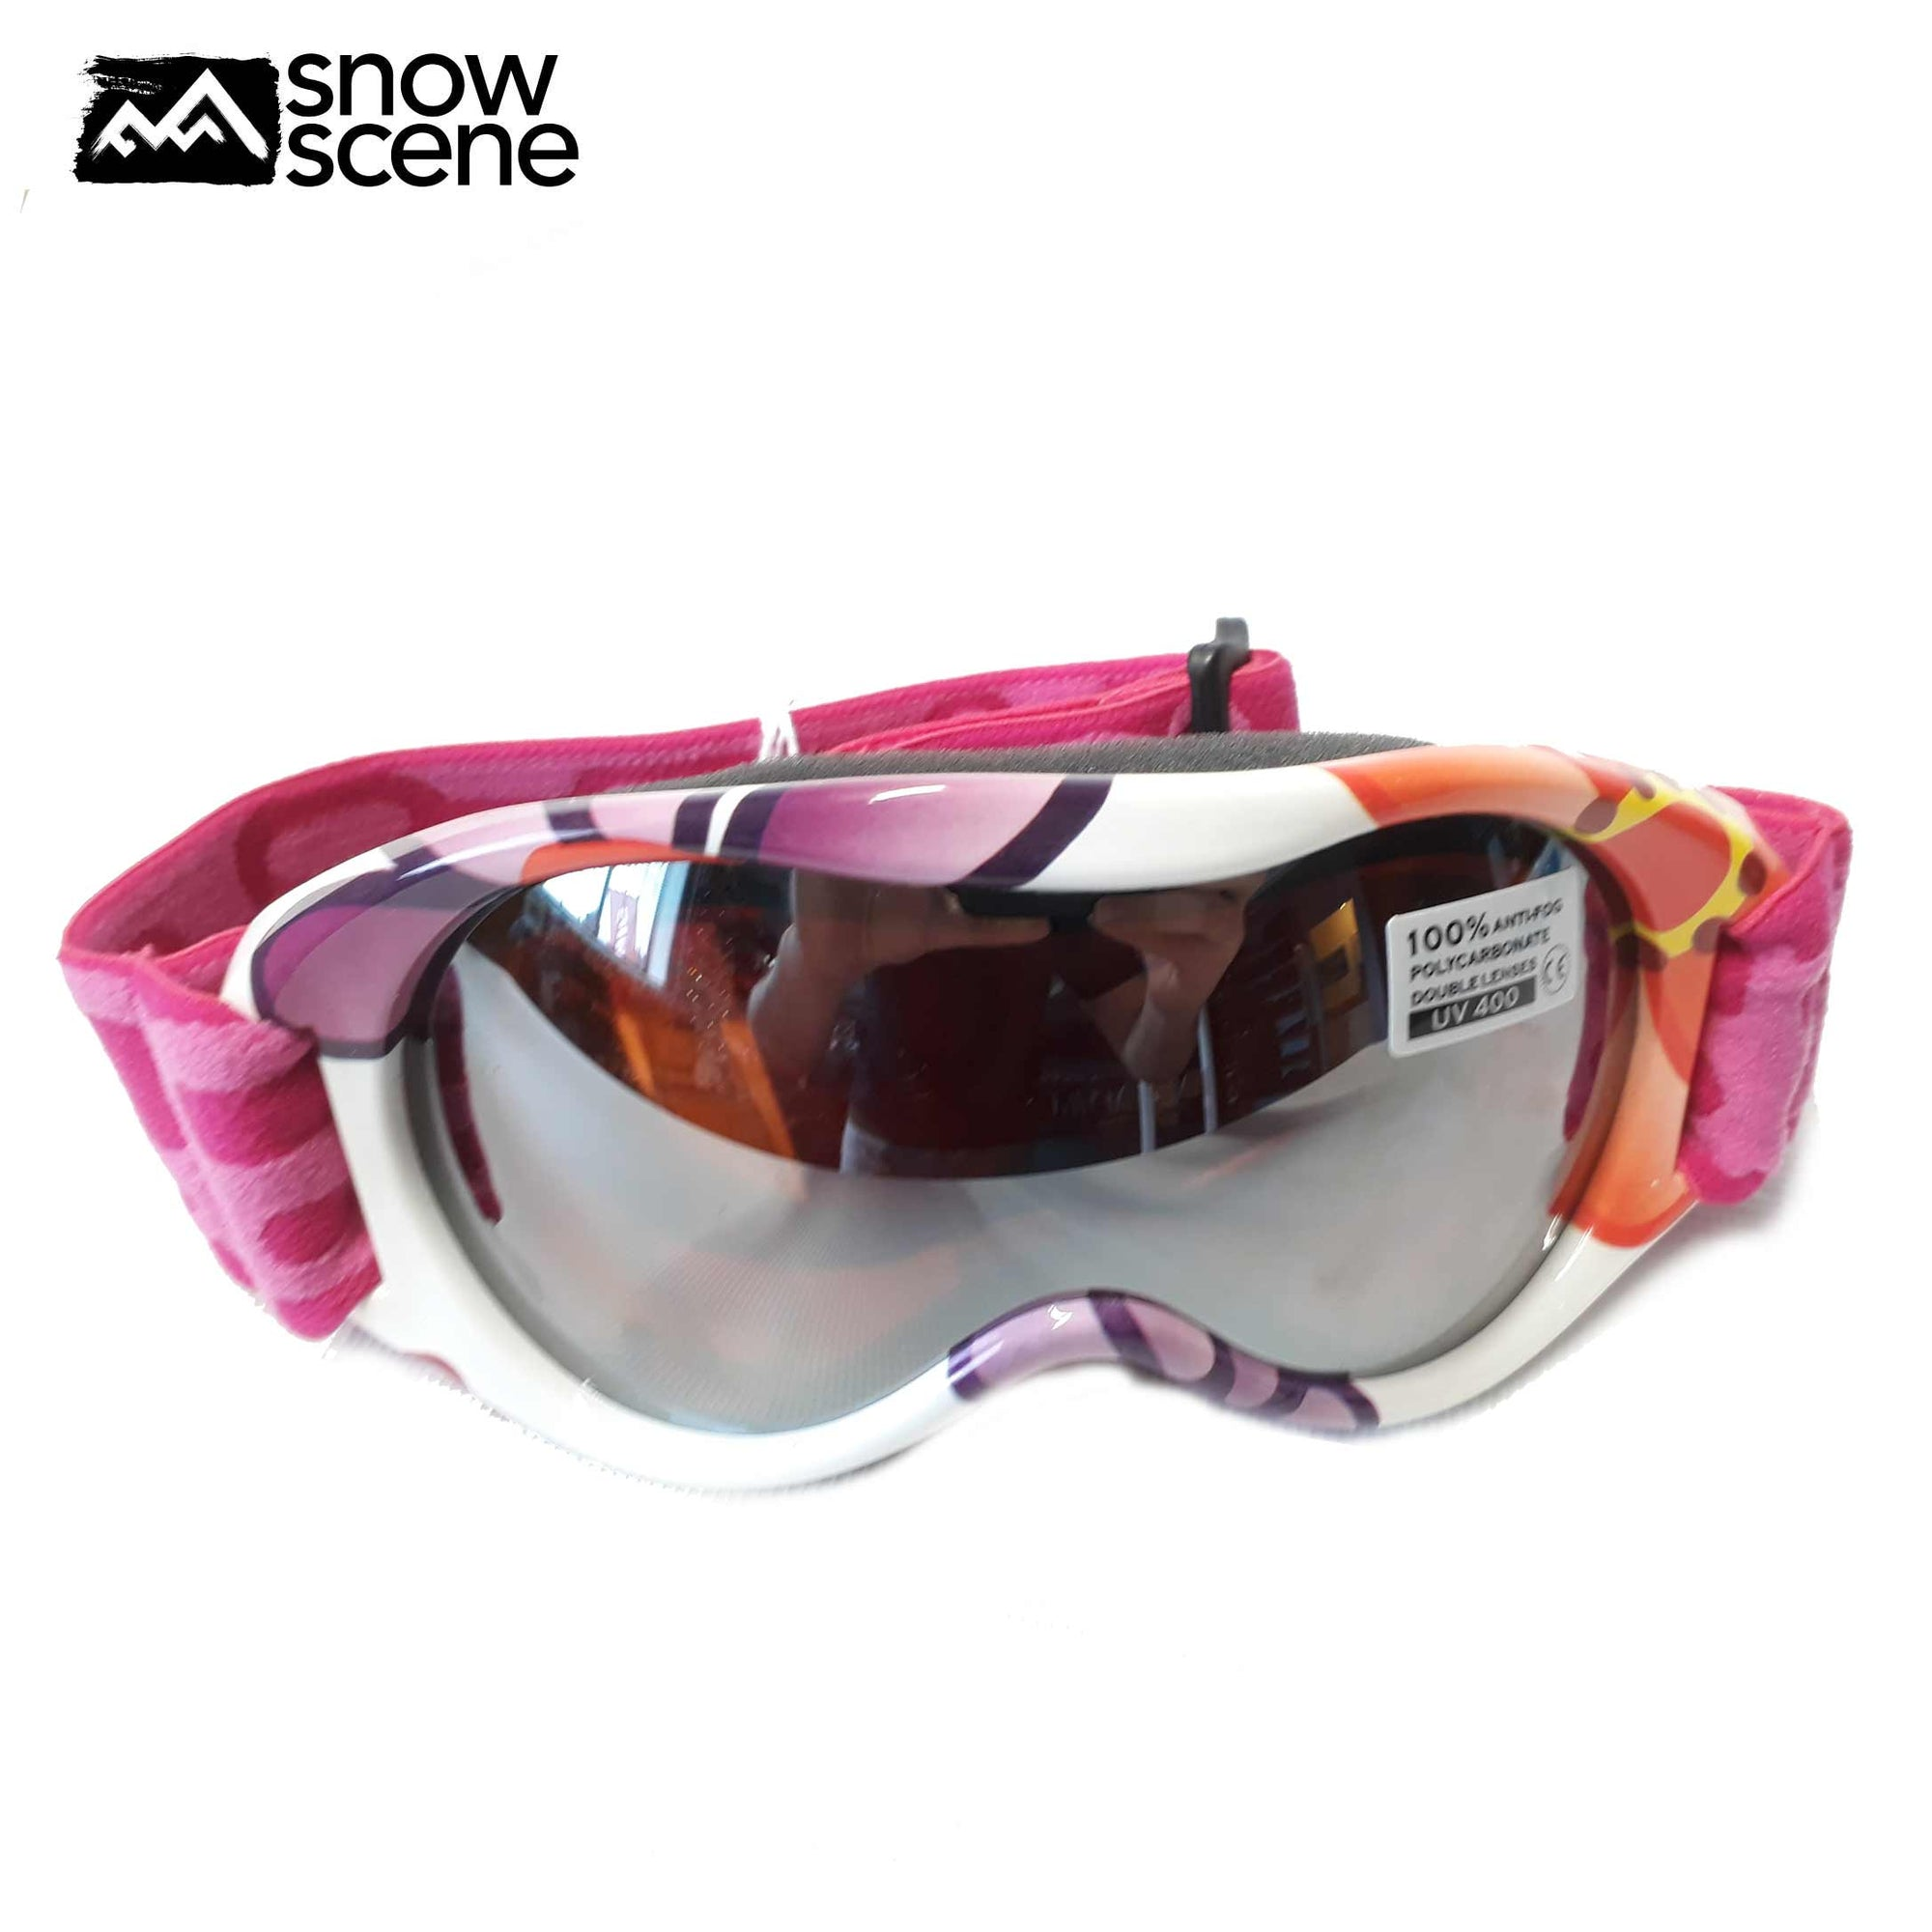 Mountain Adventure Junior Goggles- Shop Skis and snow gear online nz - snowscene